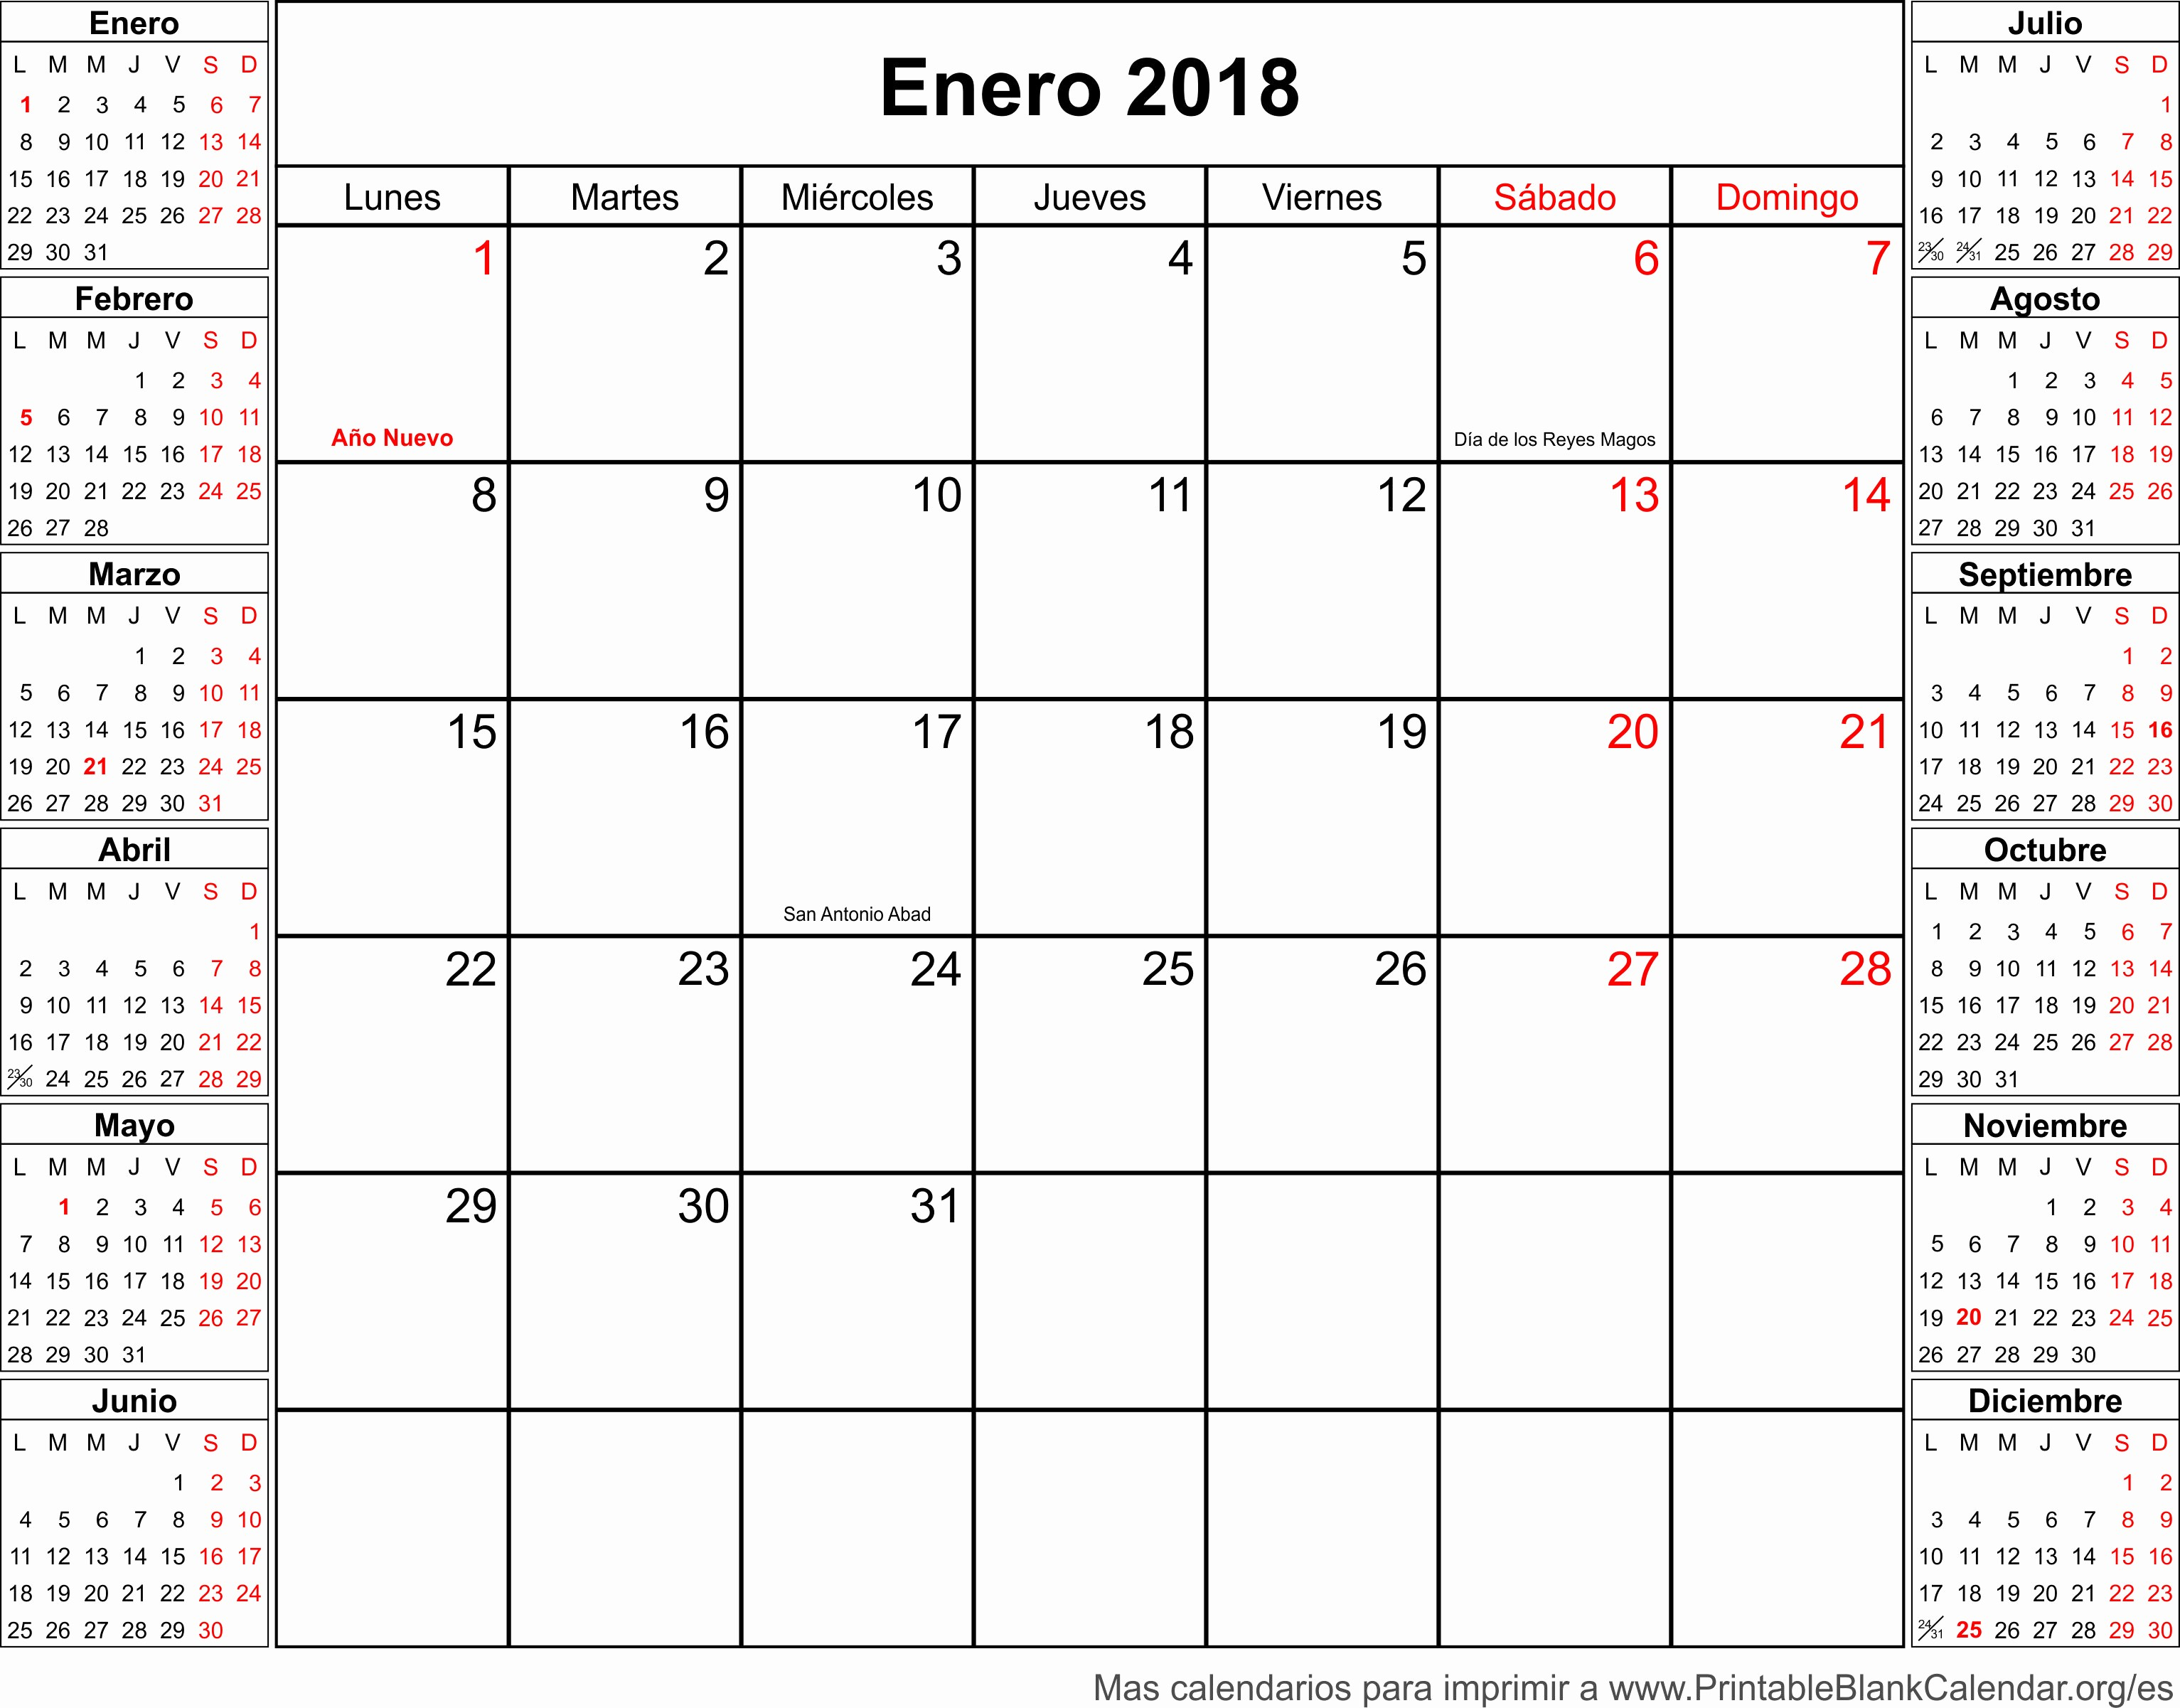 Calendario Febrero 2018 Para Imprimir Inspirational Enero Calendario 2018 Related Keywords Enero Calendario